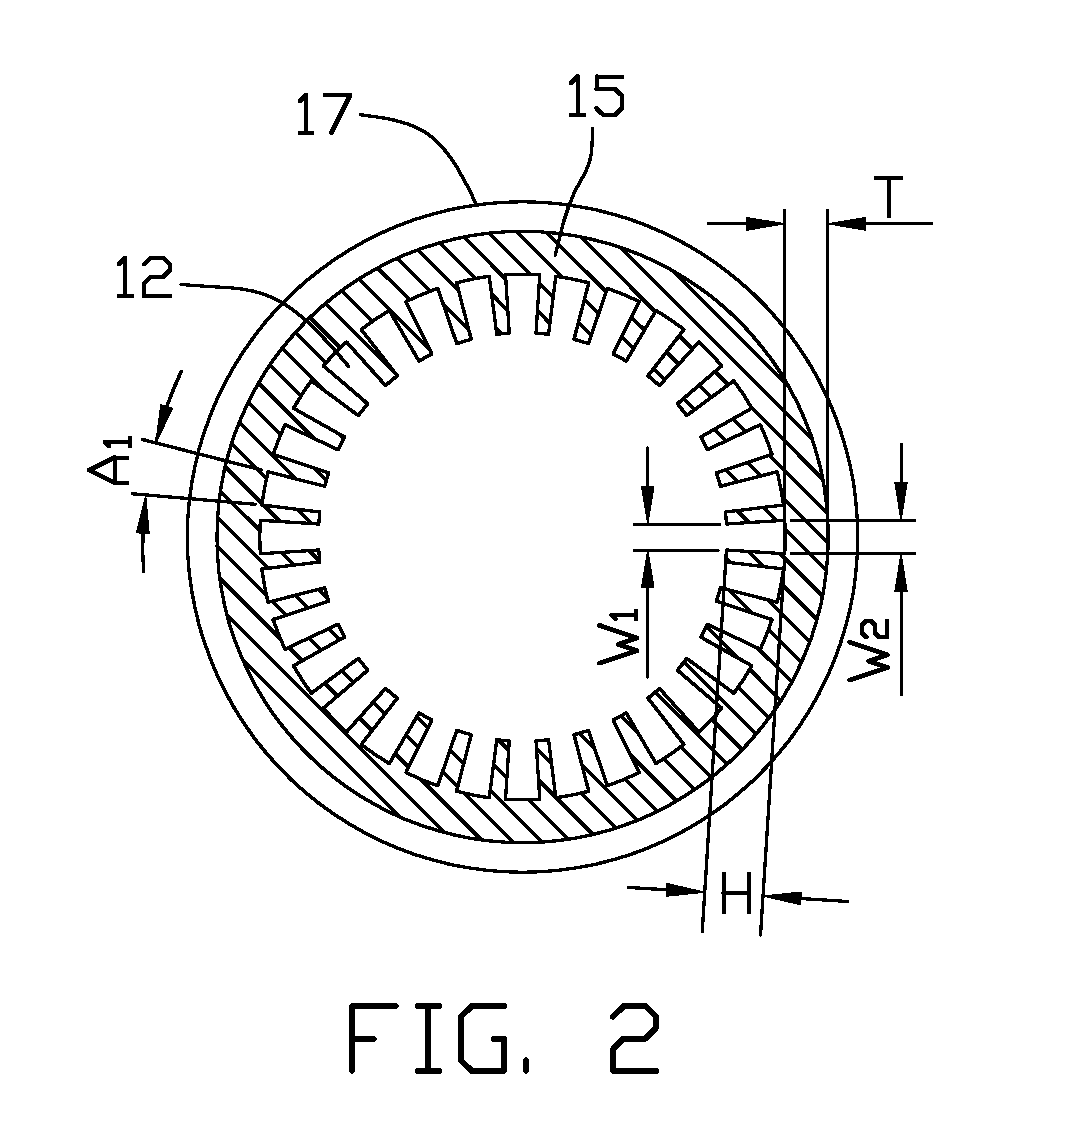 Attractive Three Phase Motor Winding Connections Ornament ...